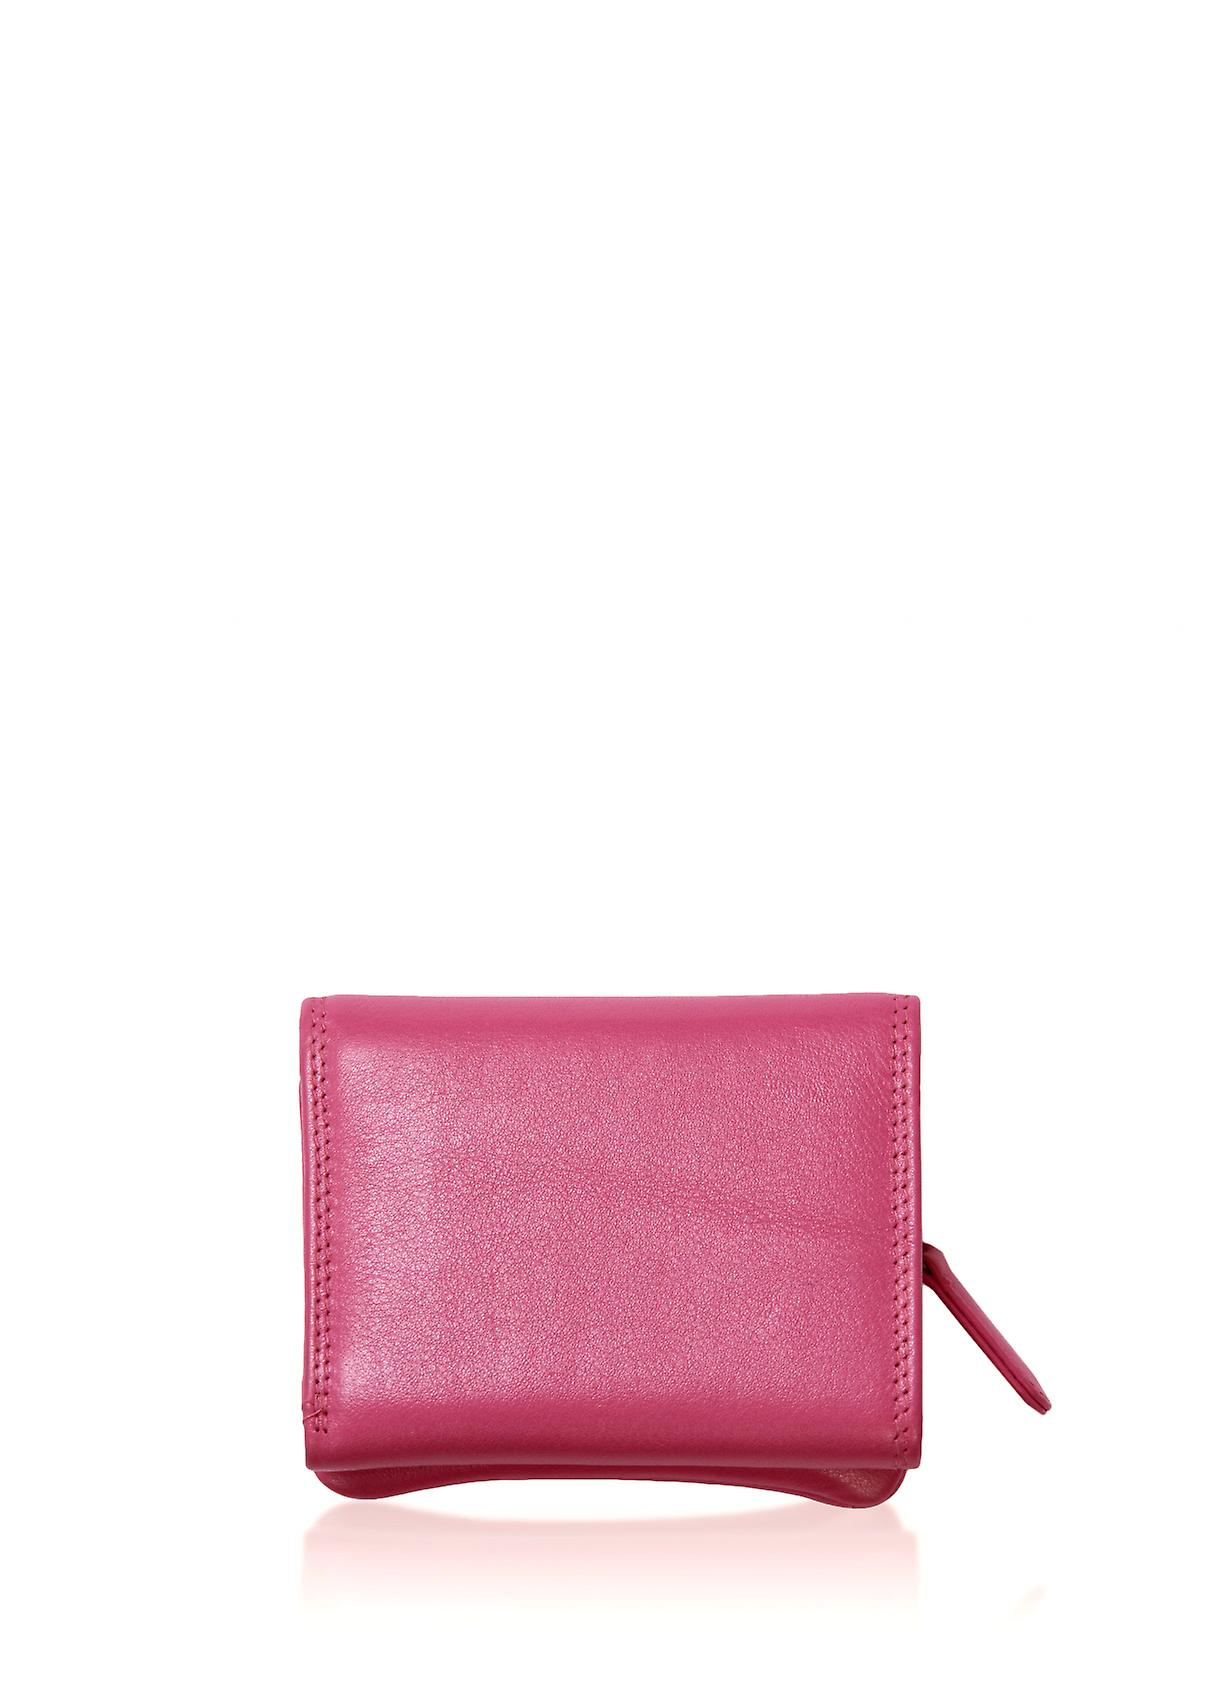 Leather Purse 10cm in Pink